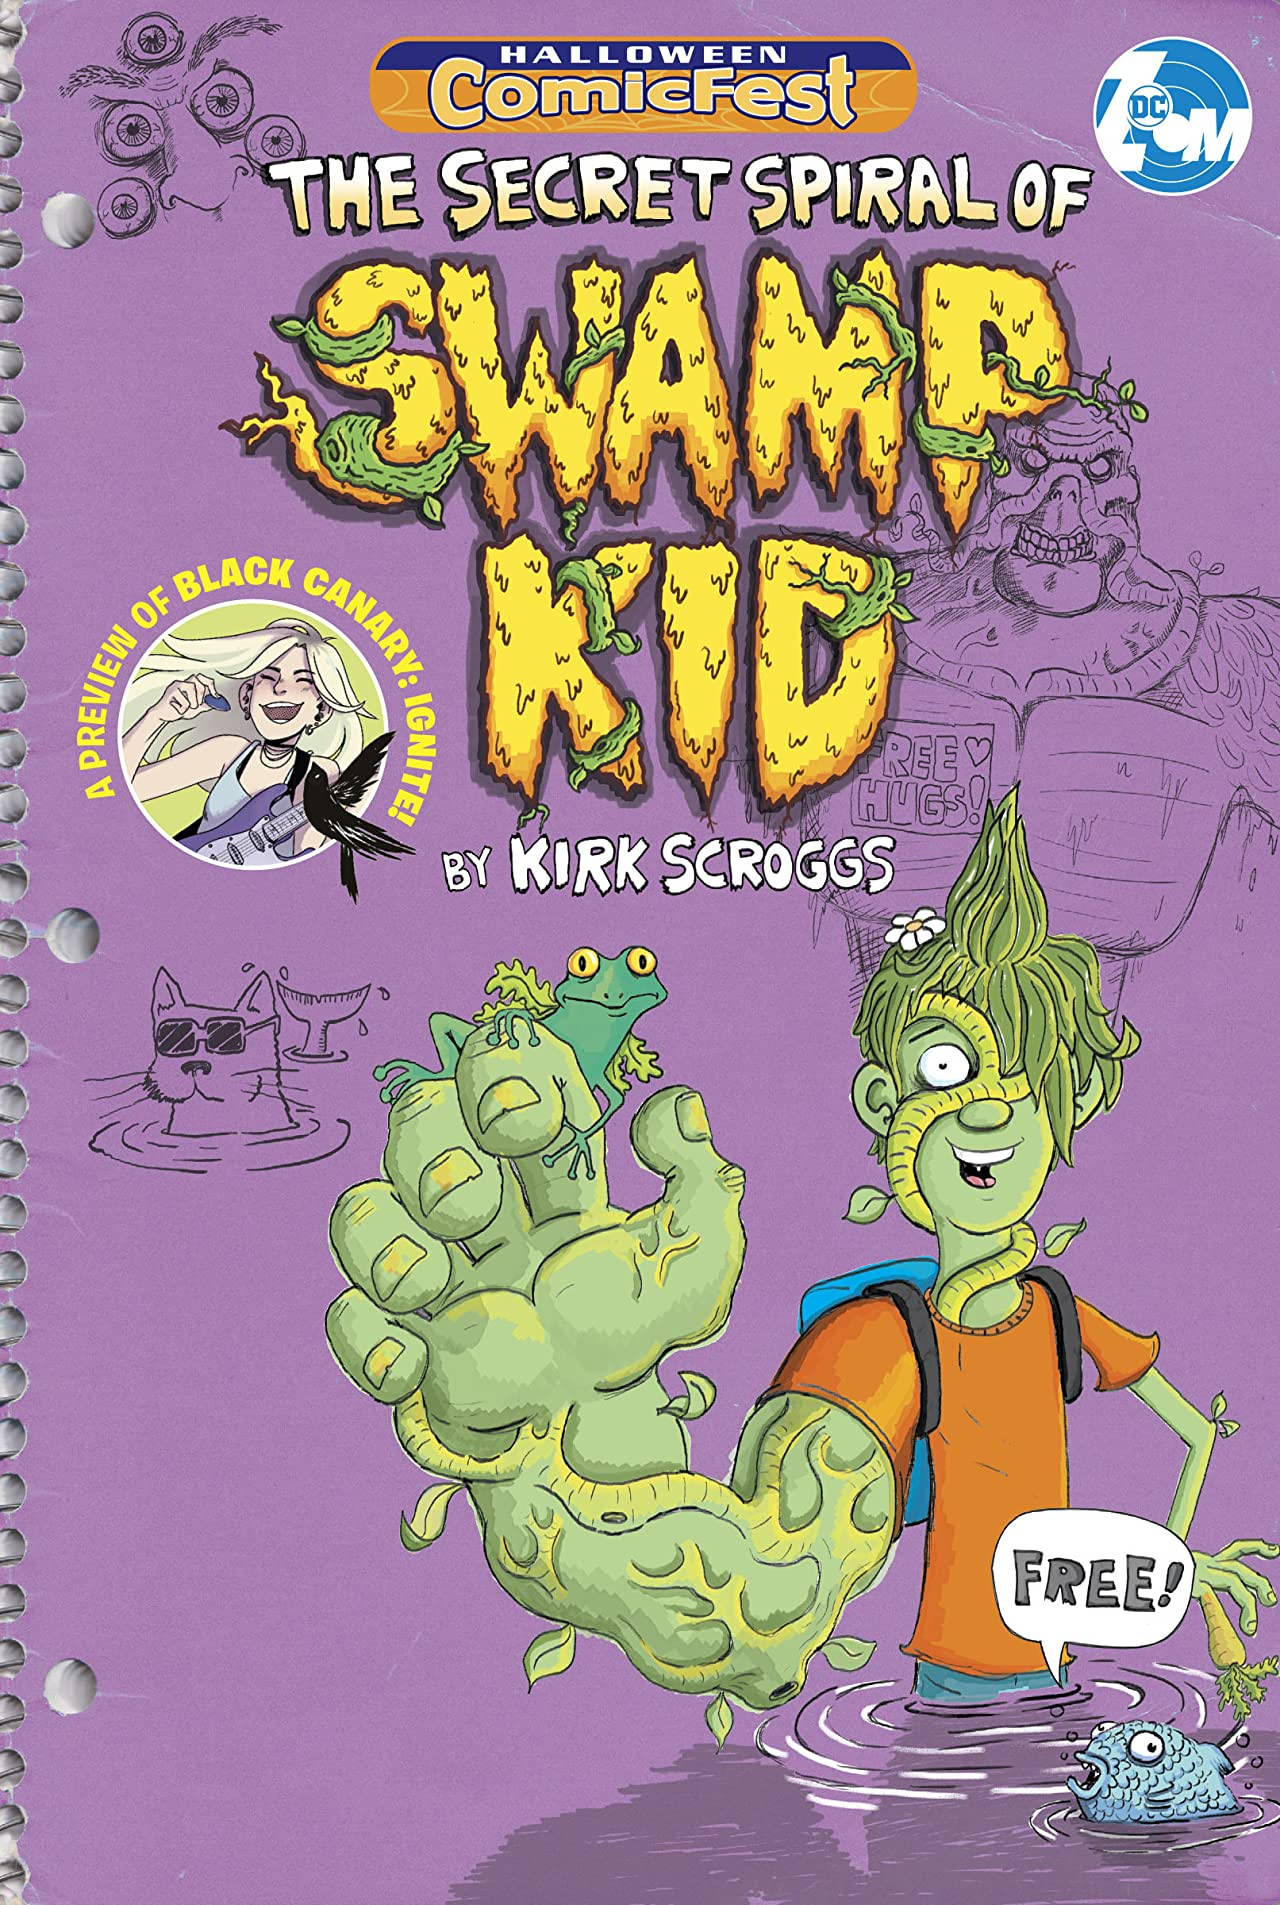 The Secret Spiral of Swamp Kid/Black Canary: Ignite Halloween ComicFest Special Edition Flip Book (2019) #1